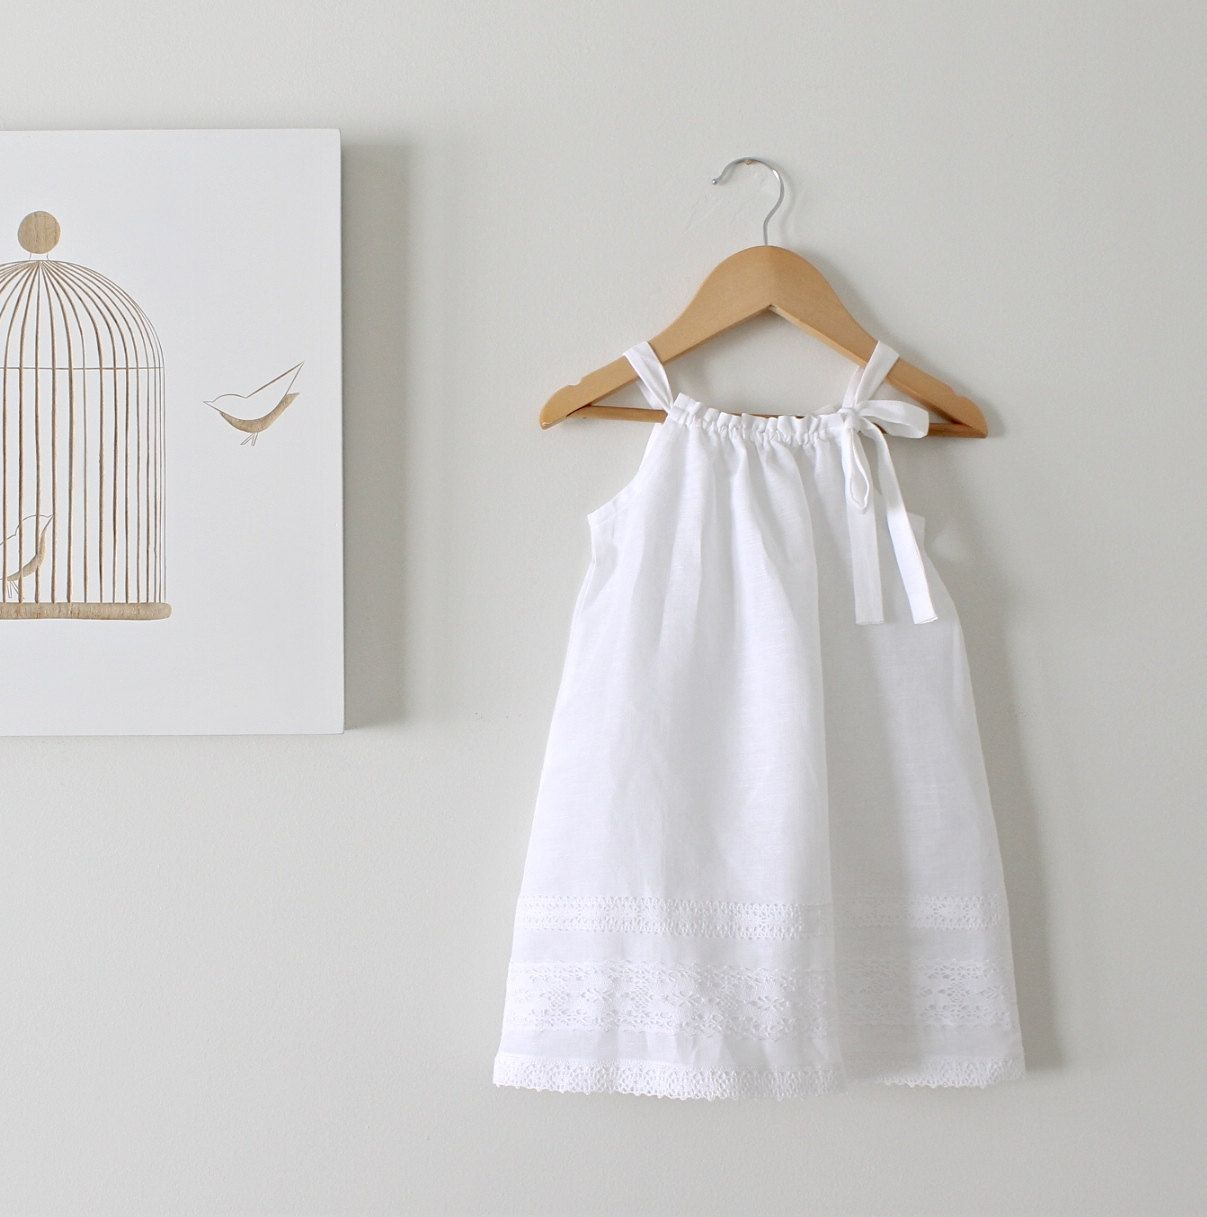 Toddler Girls White Linen and Lace Dress-Baby Baptism Dress-Beach ...